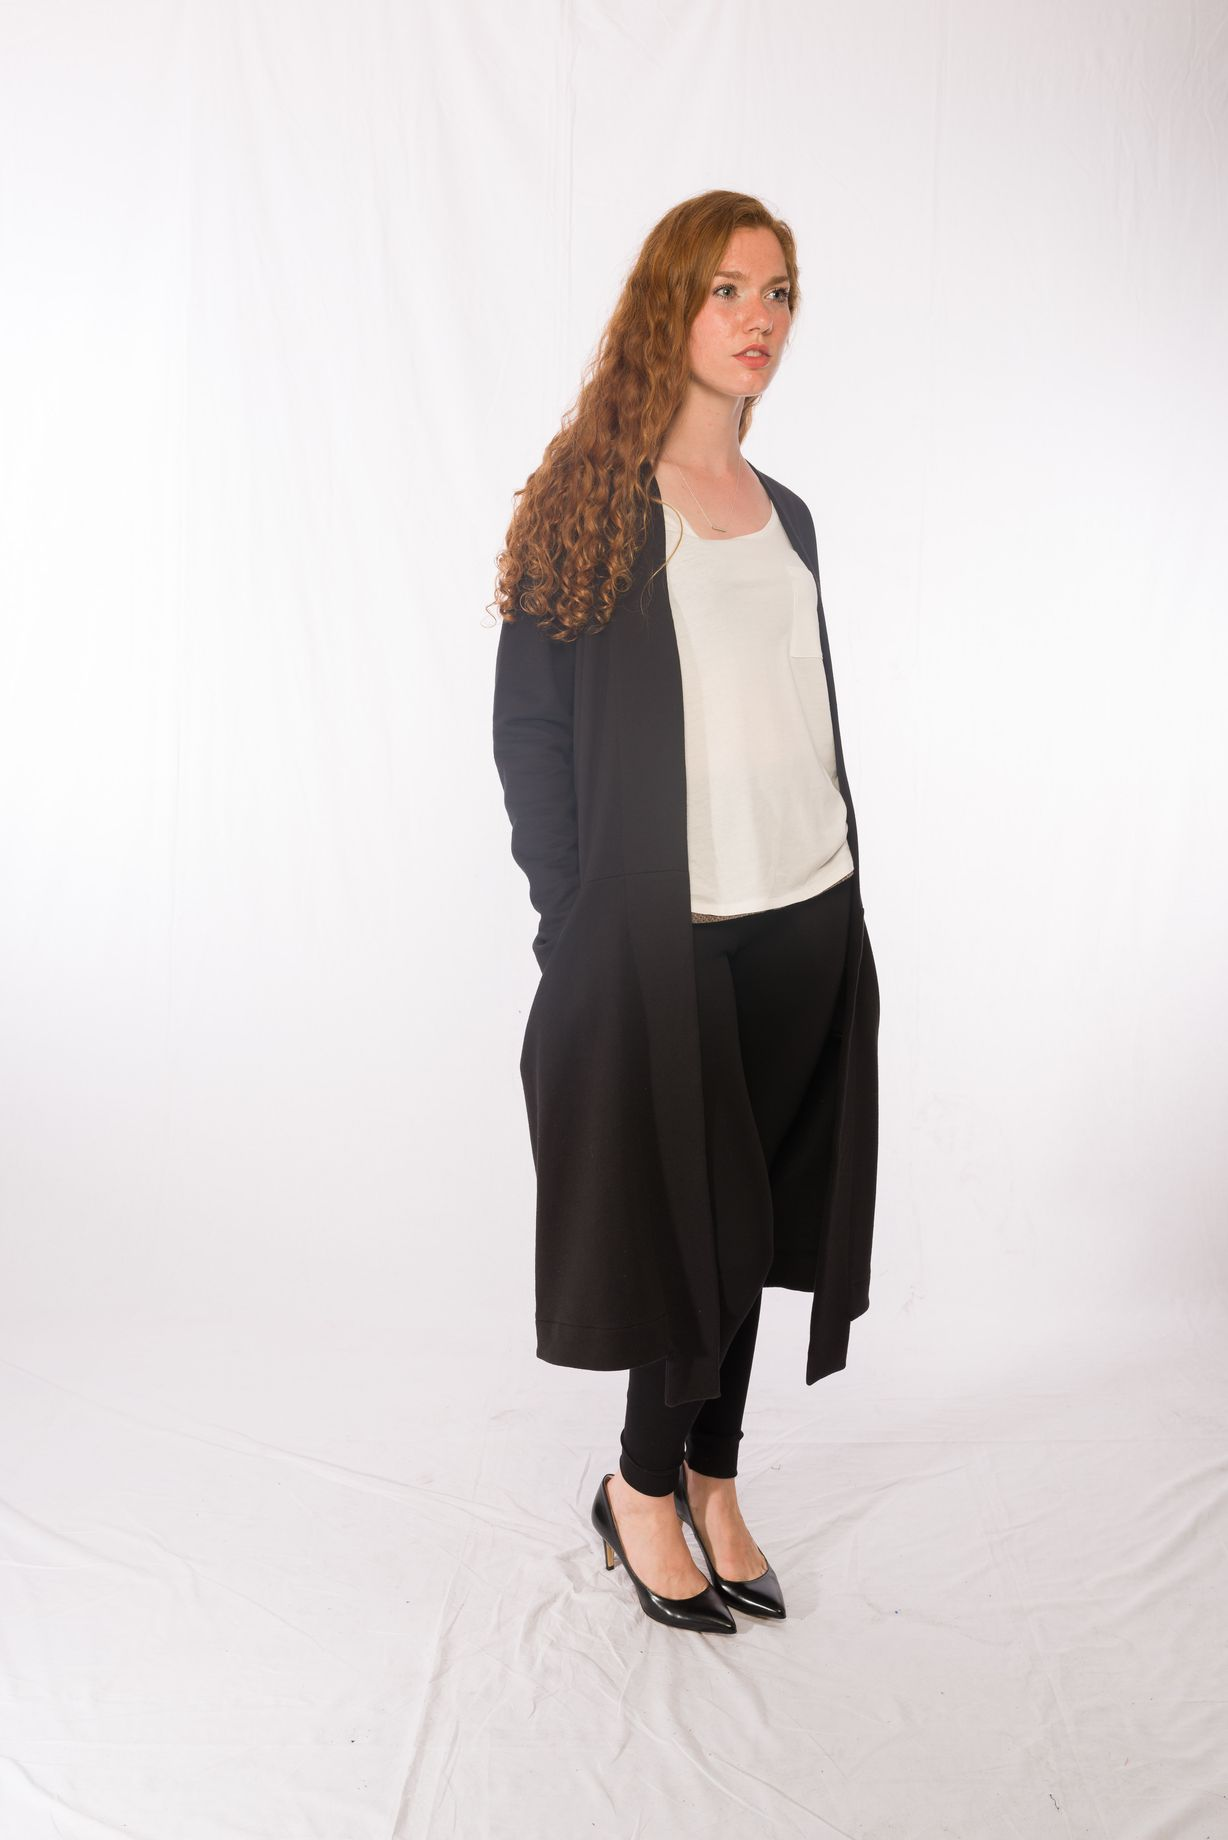 Top Quader _ Longcoat Juno _ Leggins Black